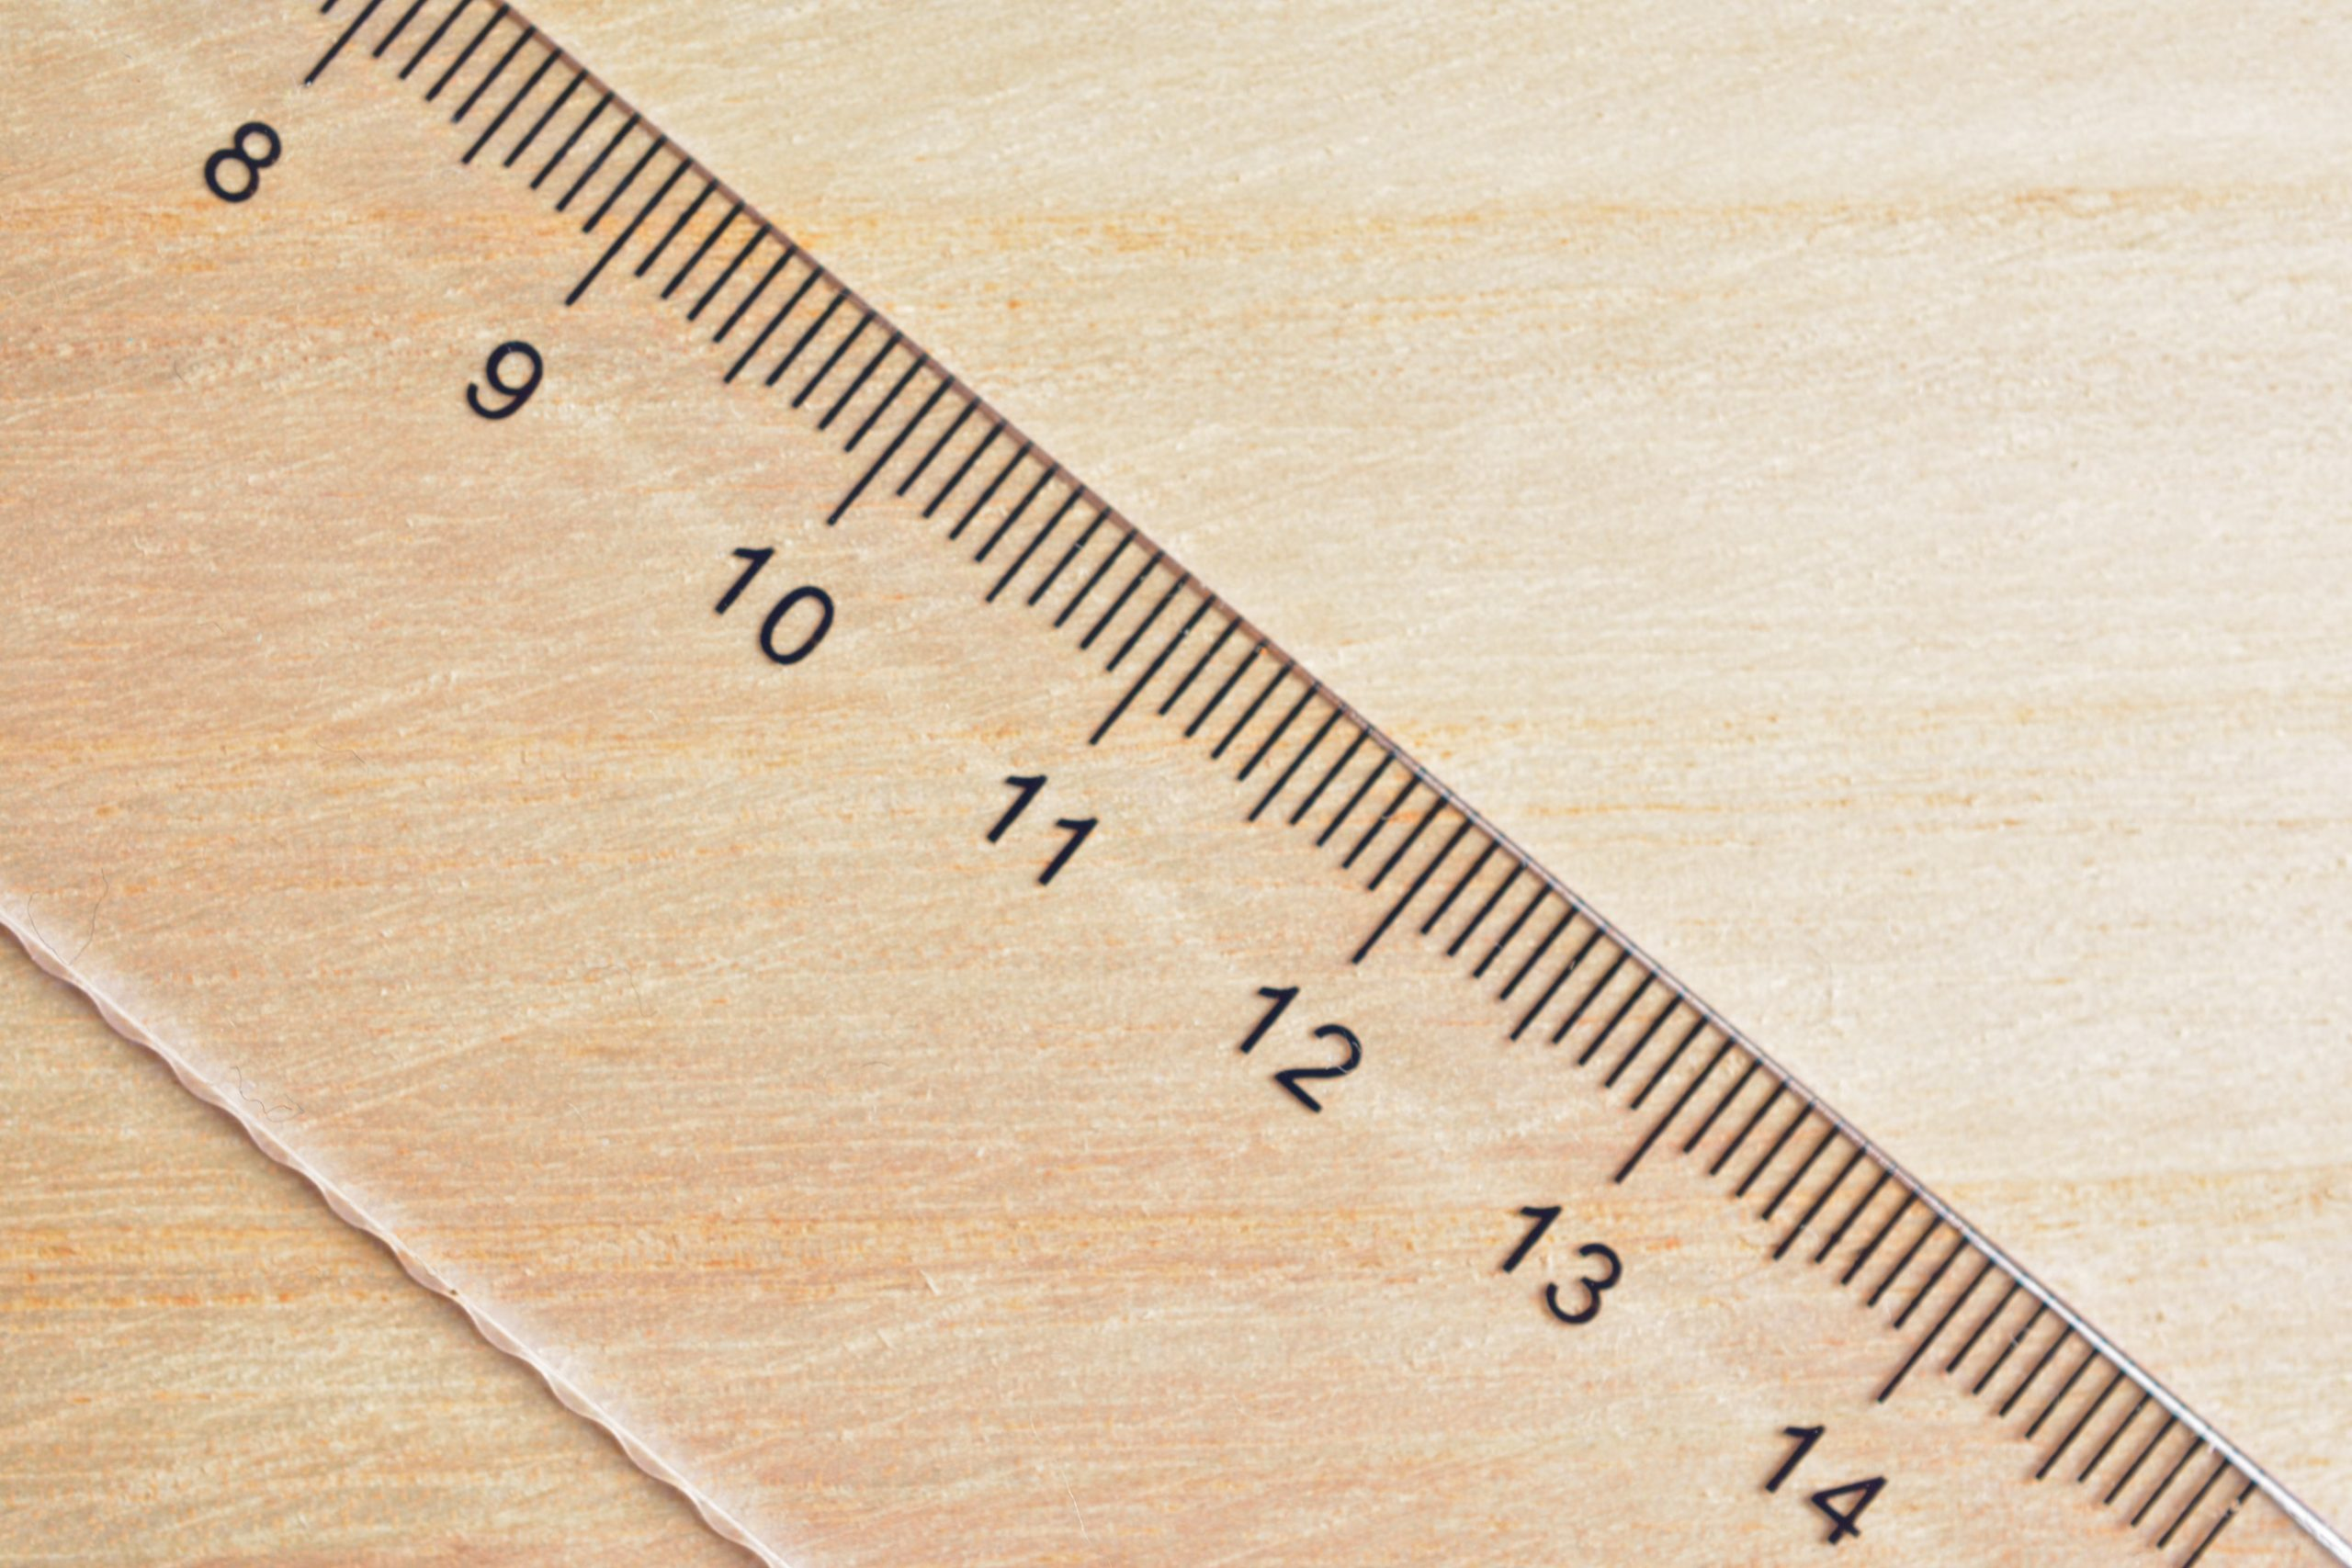 Protractor and ruler.Image of calculation.Background.